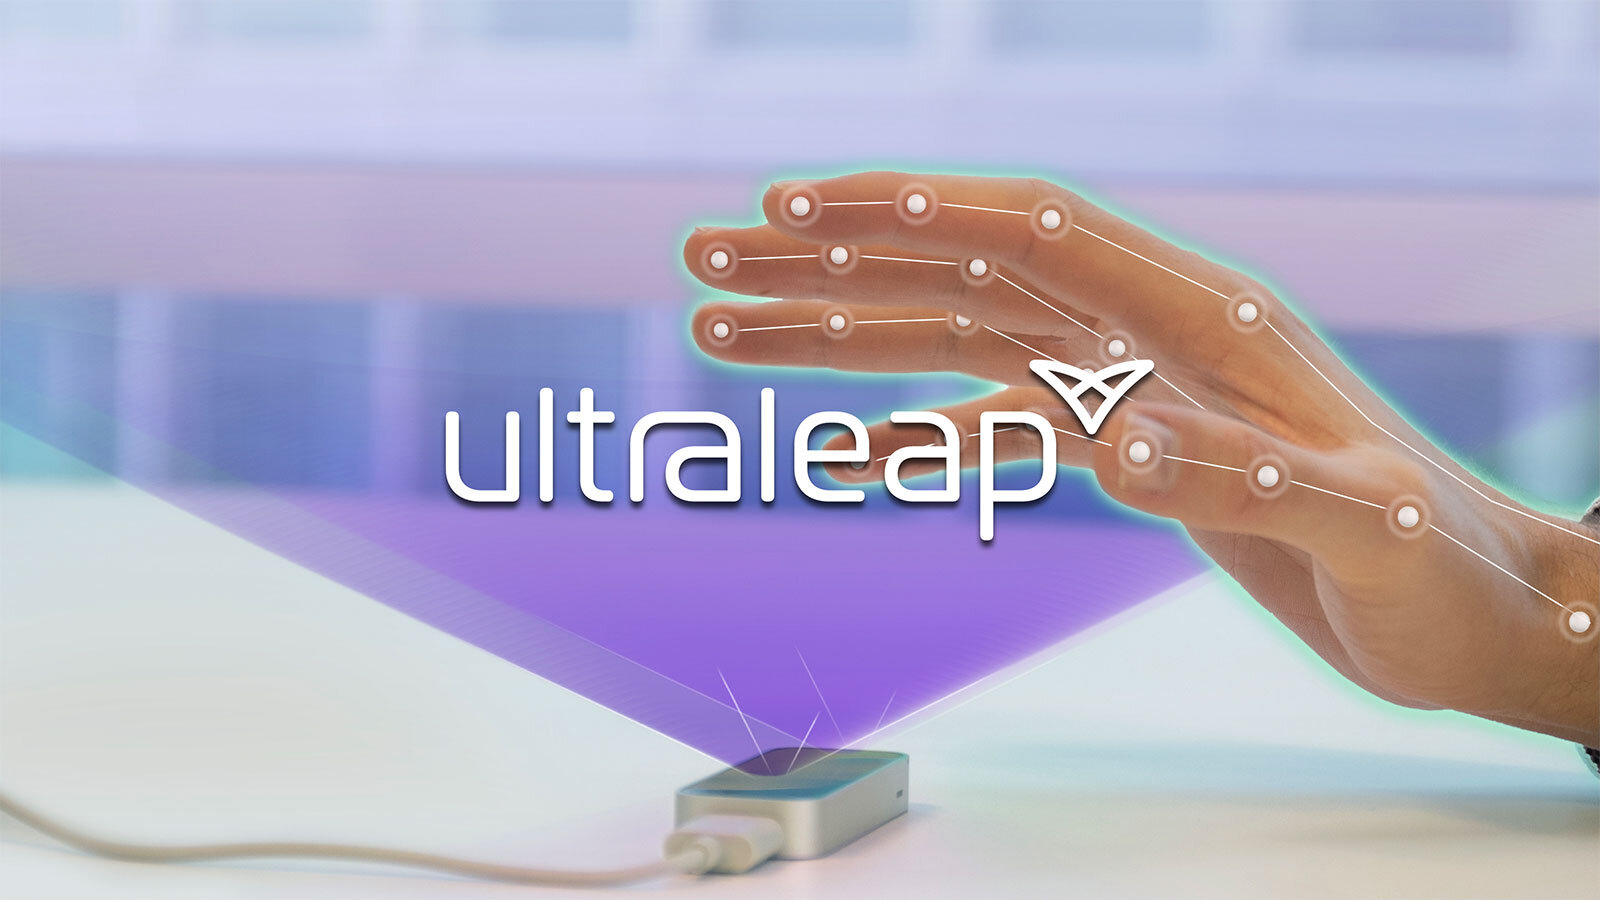 Ultraleap skeleton hand with Leap Motion Controller tracking